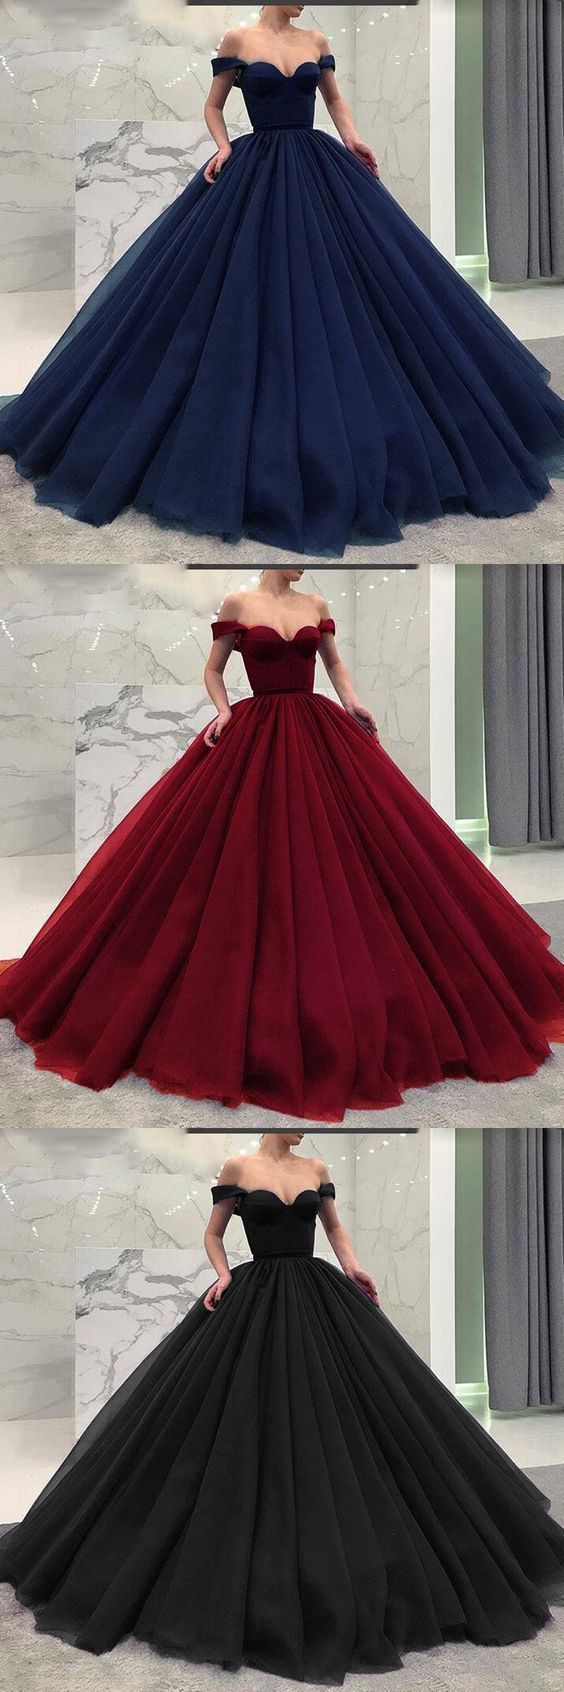 Fashionable Poofy Ball Gown Burgundy Wedding Dresses Off the Shoulder Prom Gown Evening Gowns